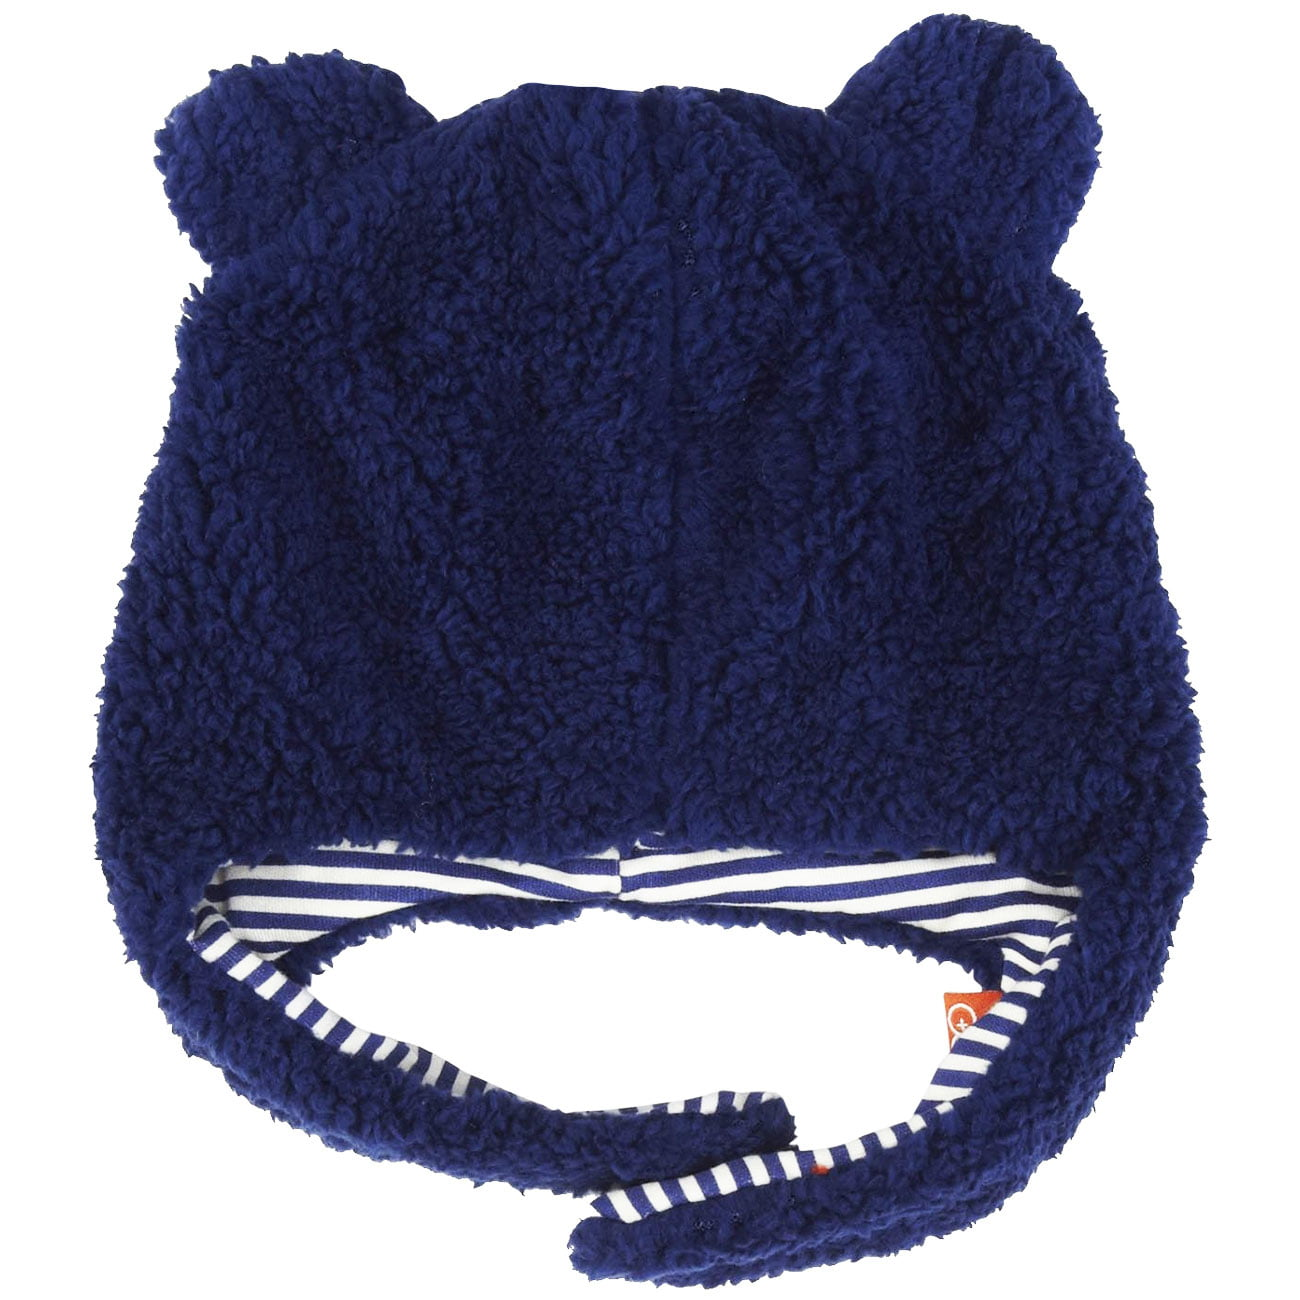 3d968c33e4c Magnificent Baby - Magnificent Baby Boys Solid Warm Fleece Winter Hat with  Cotton Lining Easy Magnet Close Chin Strap and Ear Flap 12-18 Months Navy  Blue ...